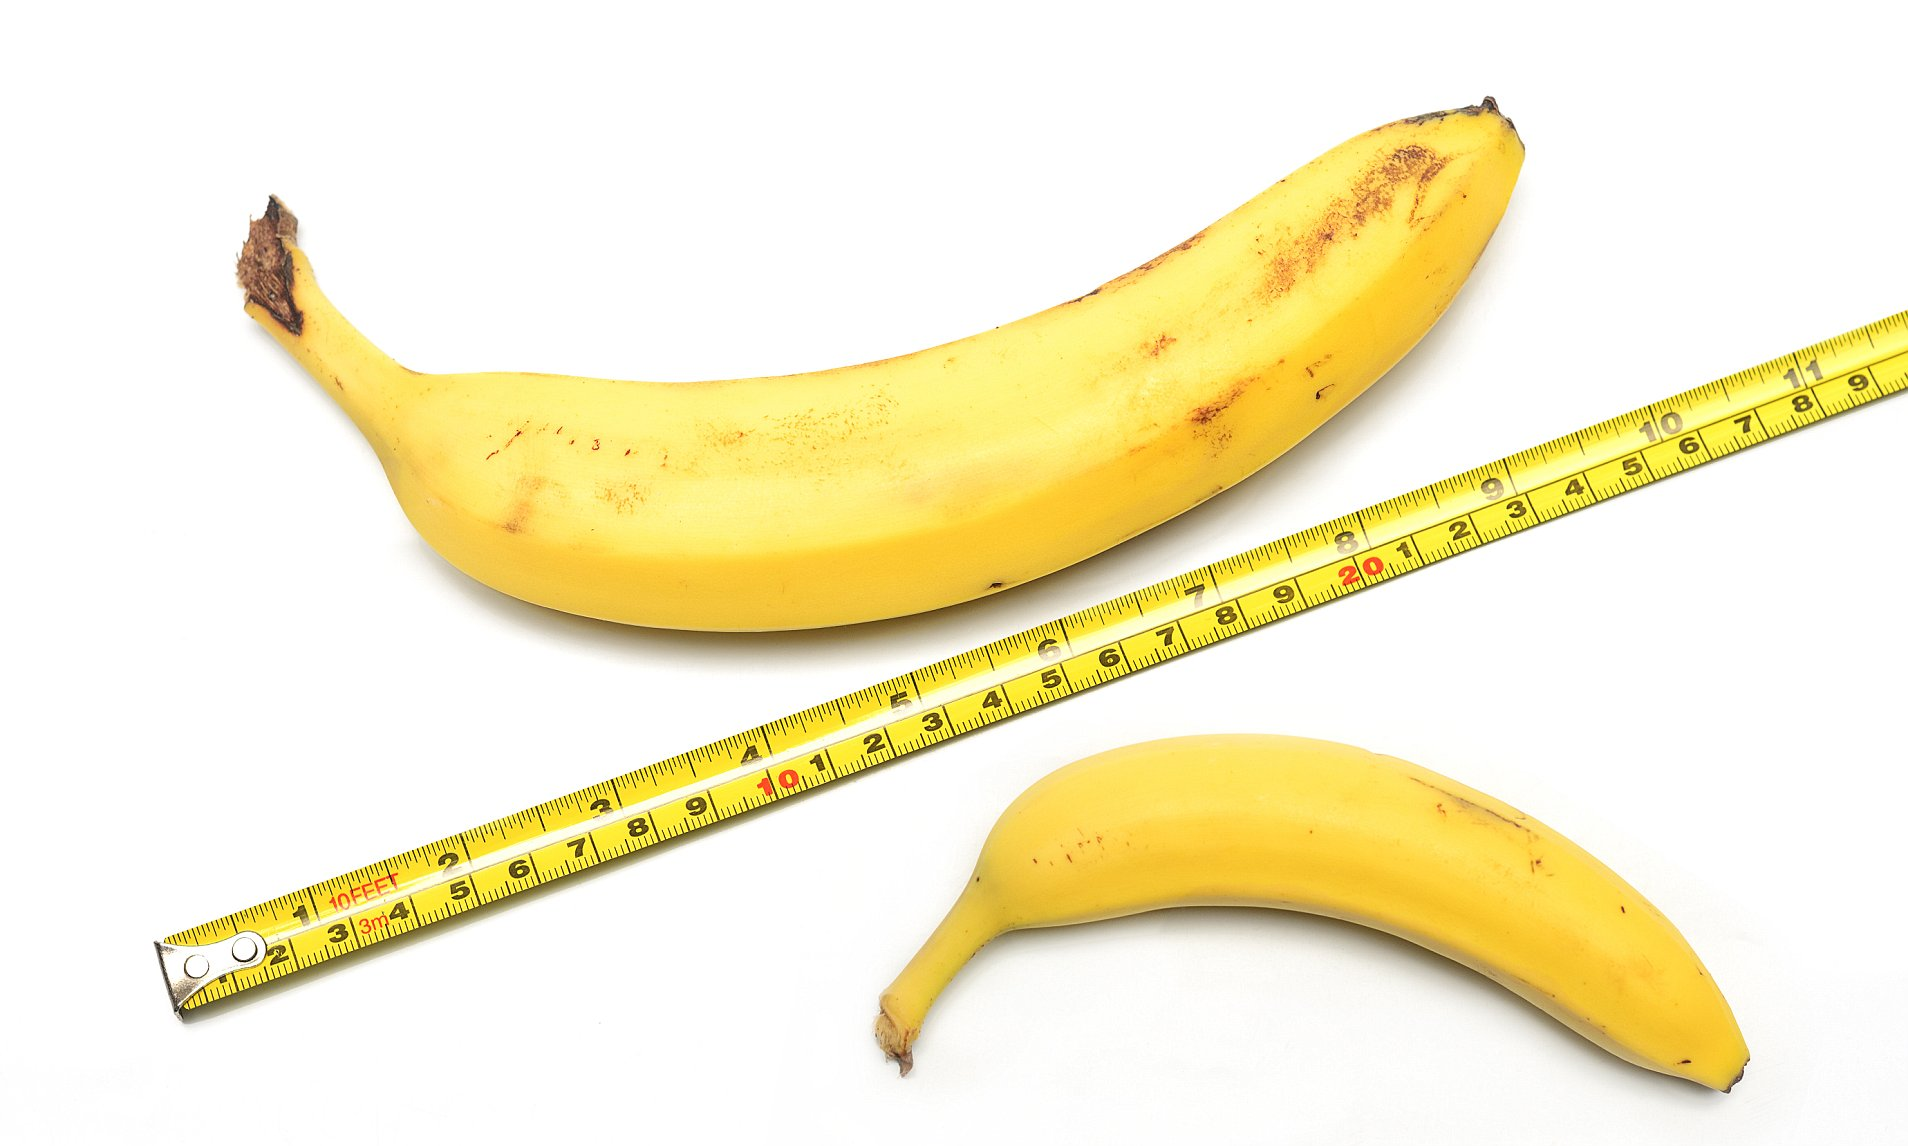 a grower penis